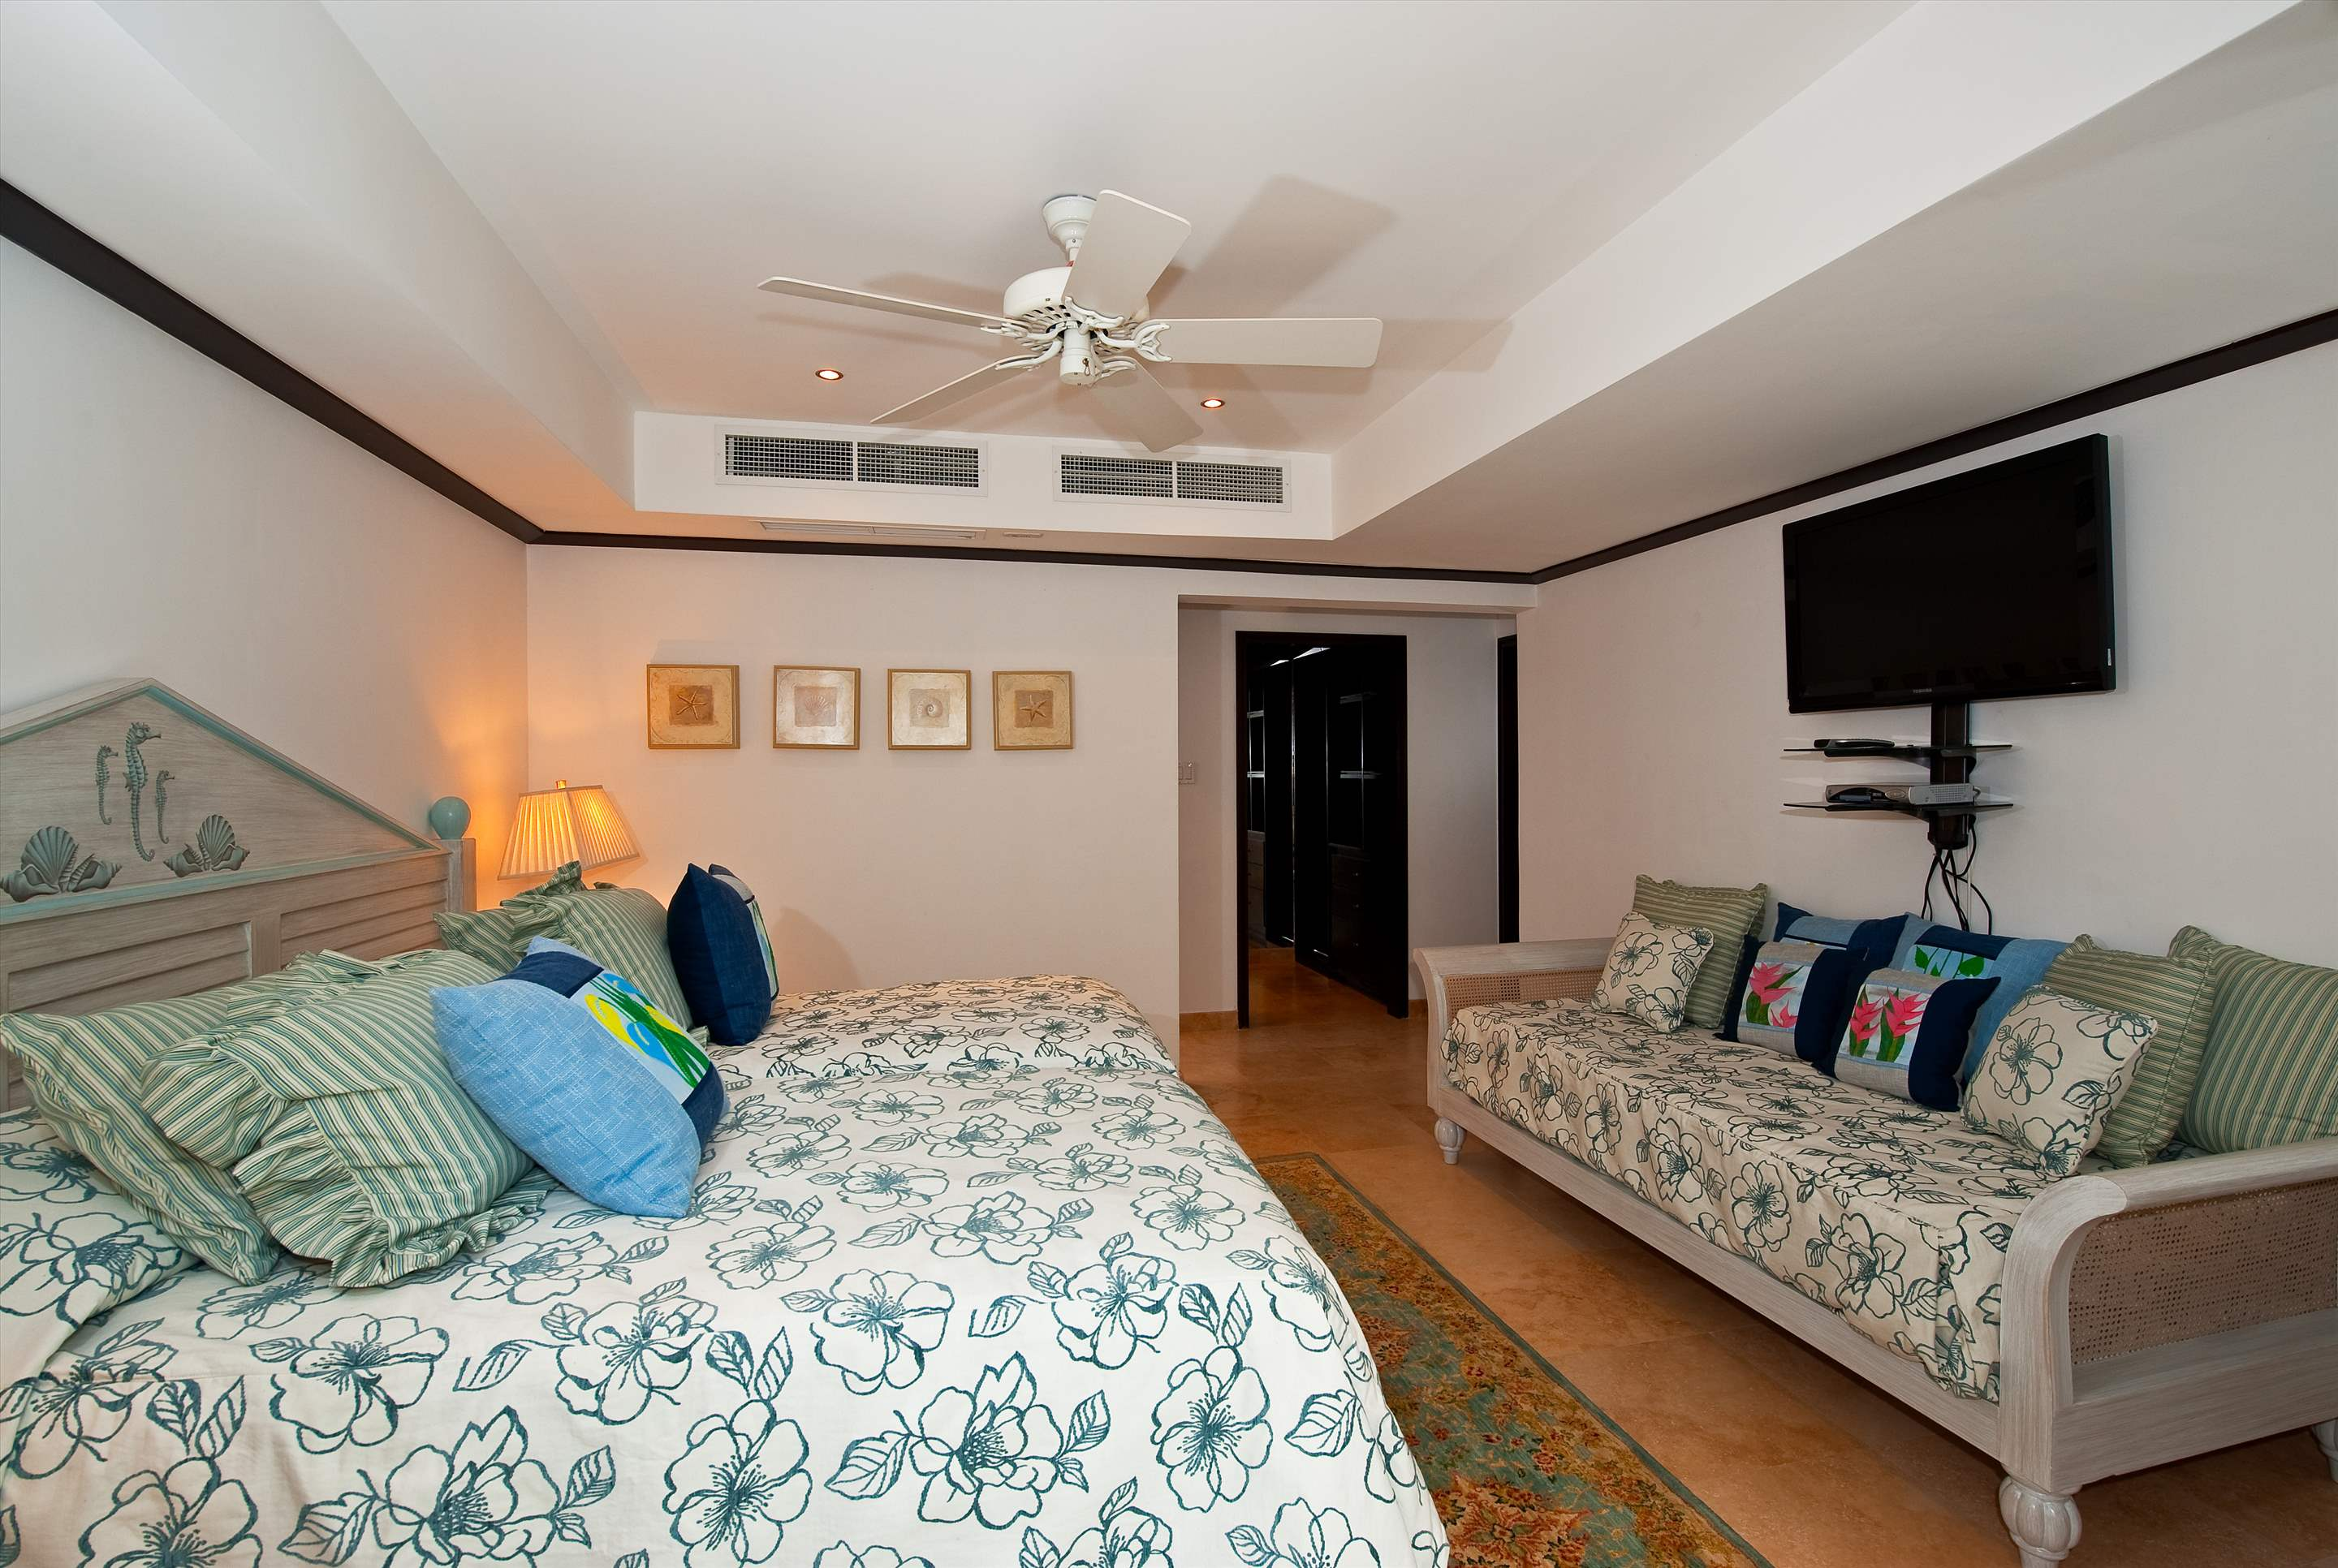 Coral Cove 3 Green Flash, 2 bedroom apartment in St. James & West Coast, Barbados Photo #8